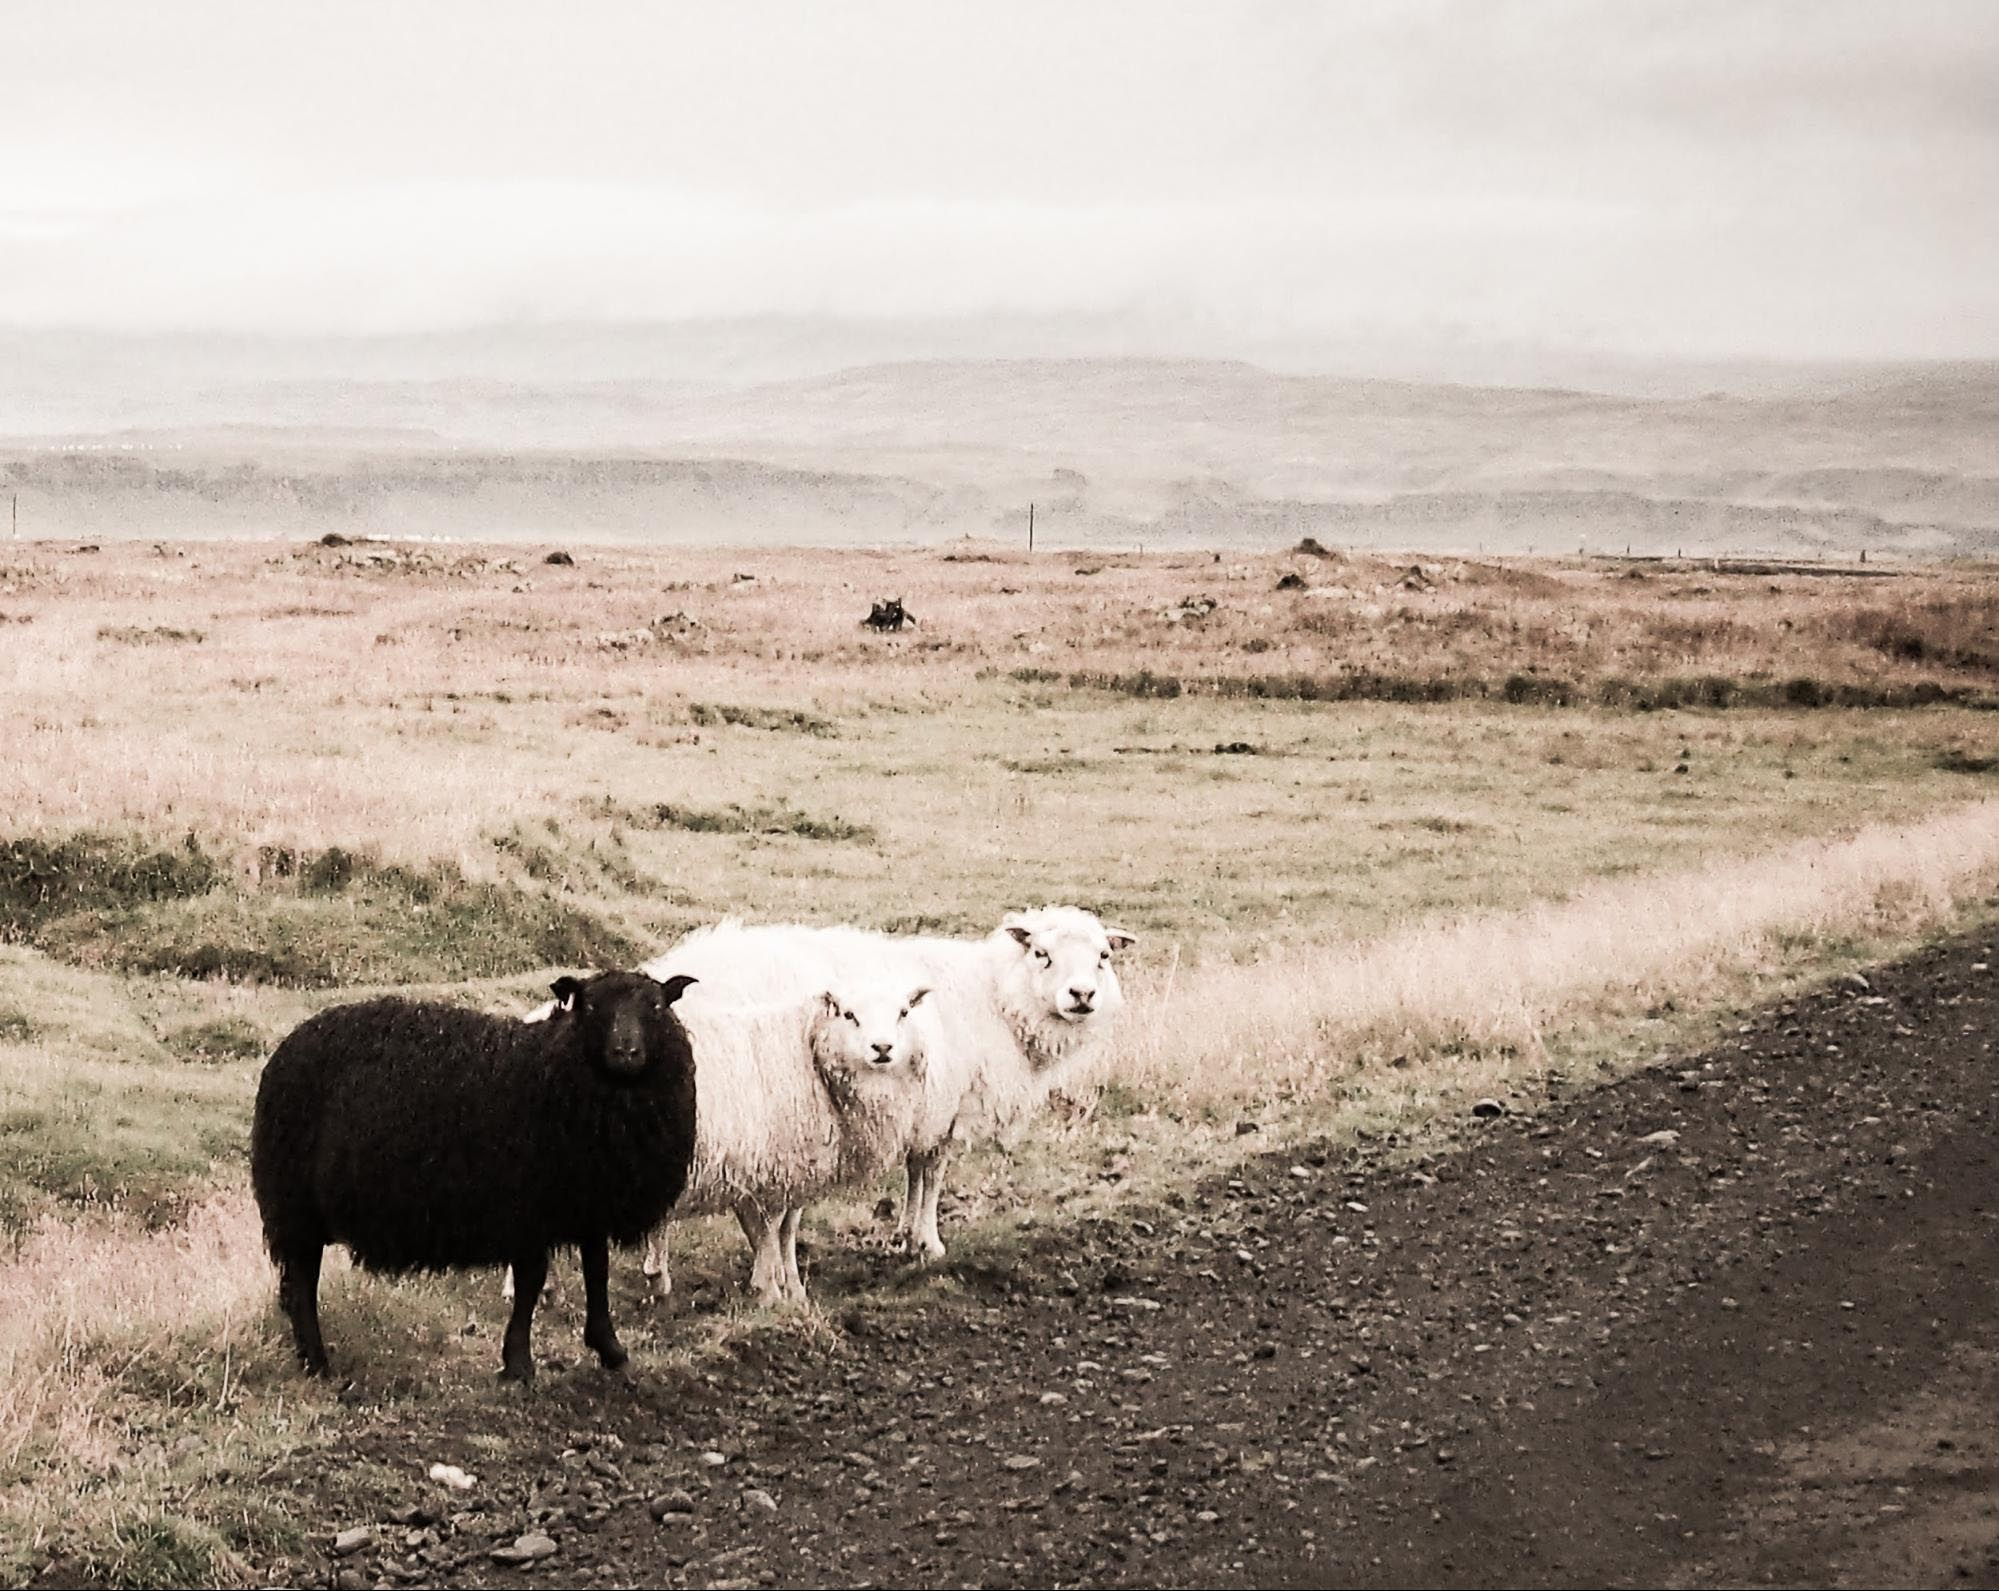 One black sheep, two white ones